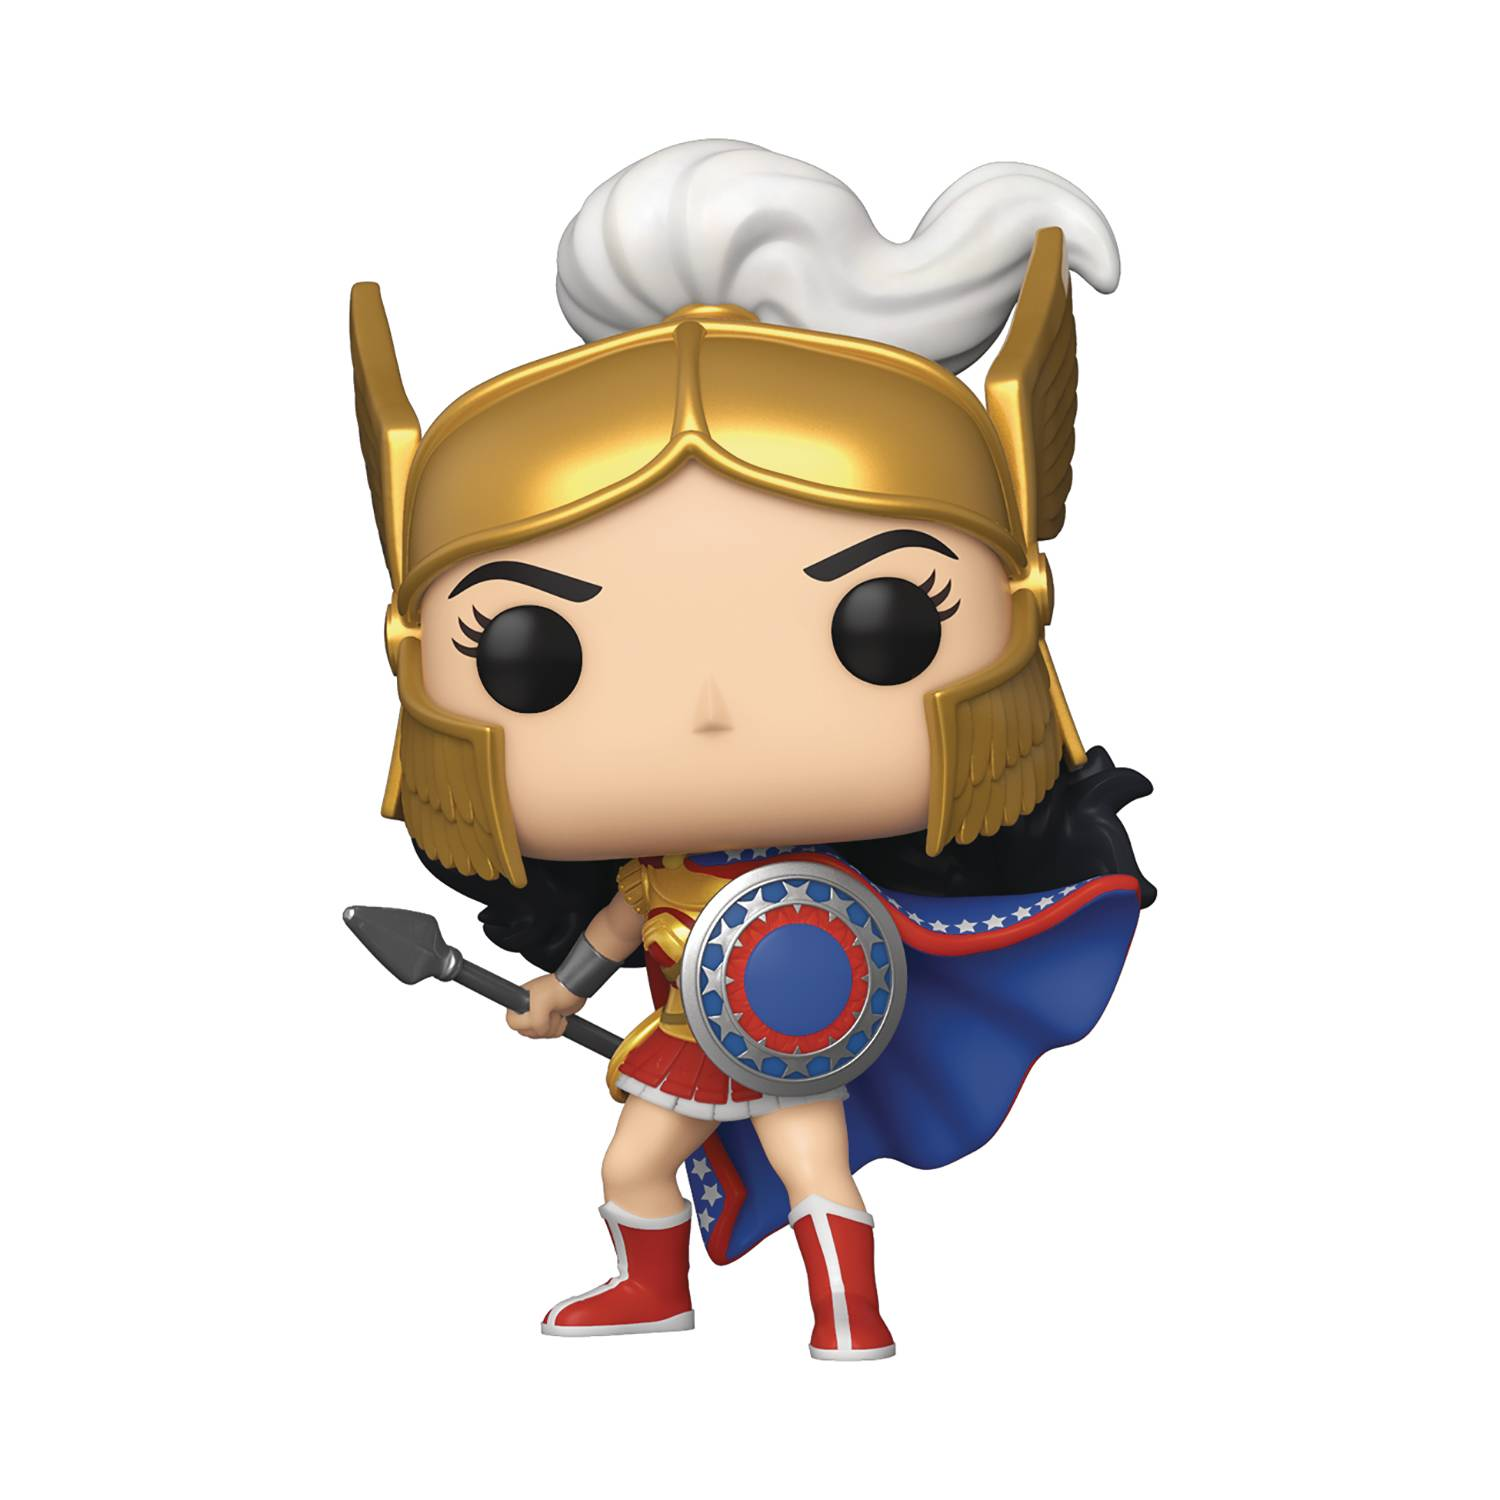 POP HEROES WONDER WOMAN 80TH WW CHALLENGE THE GODS VIN FIG (